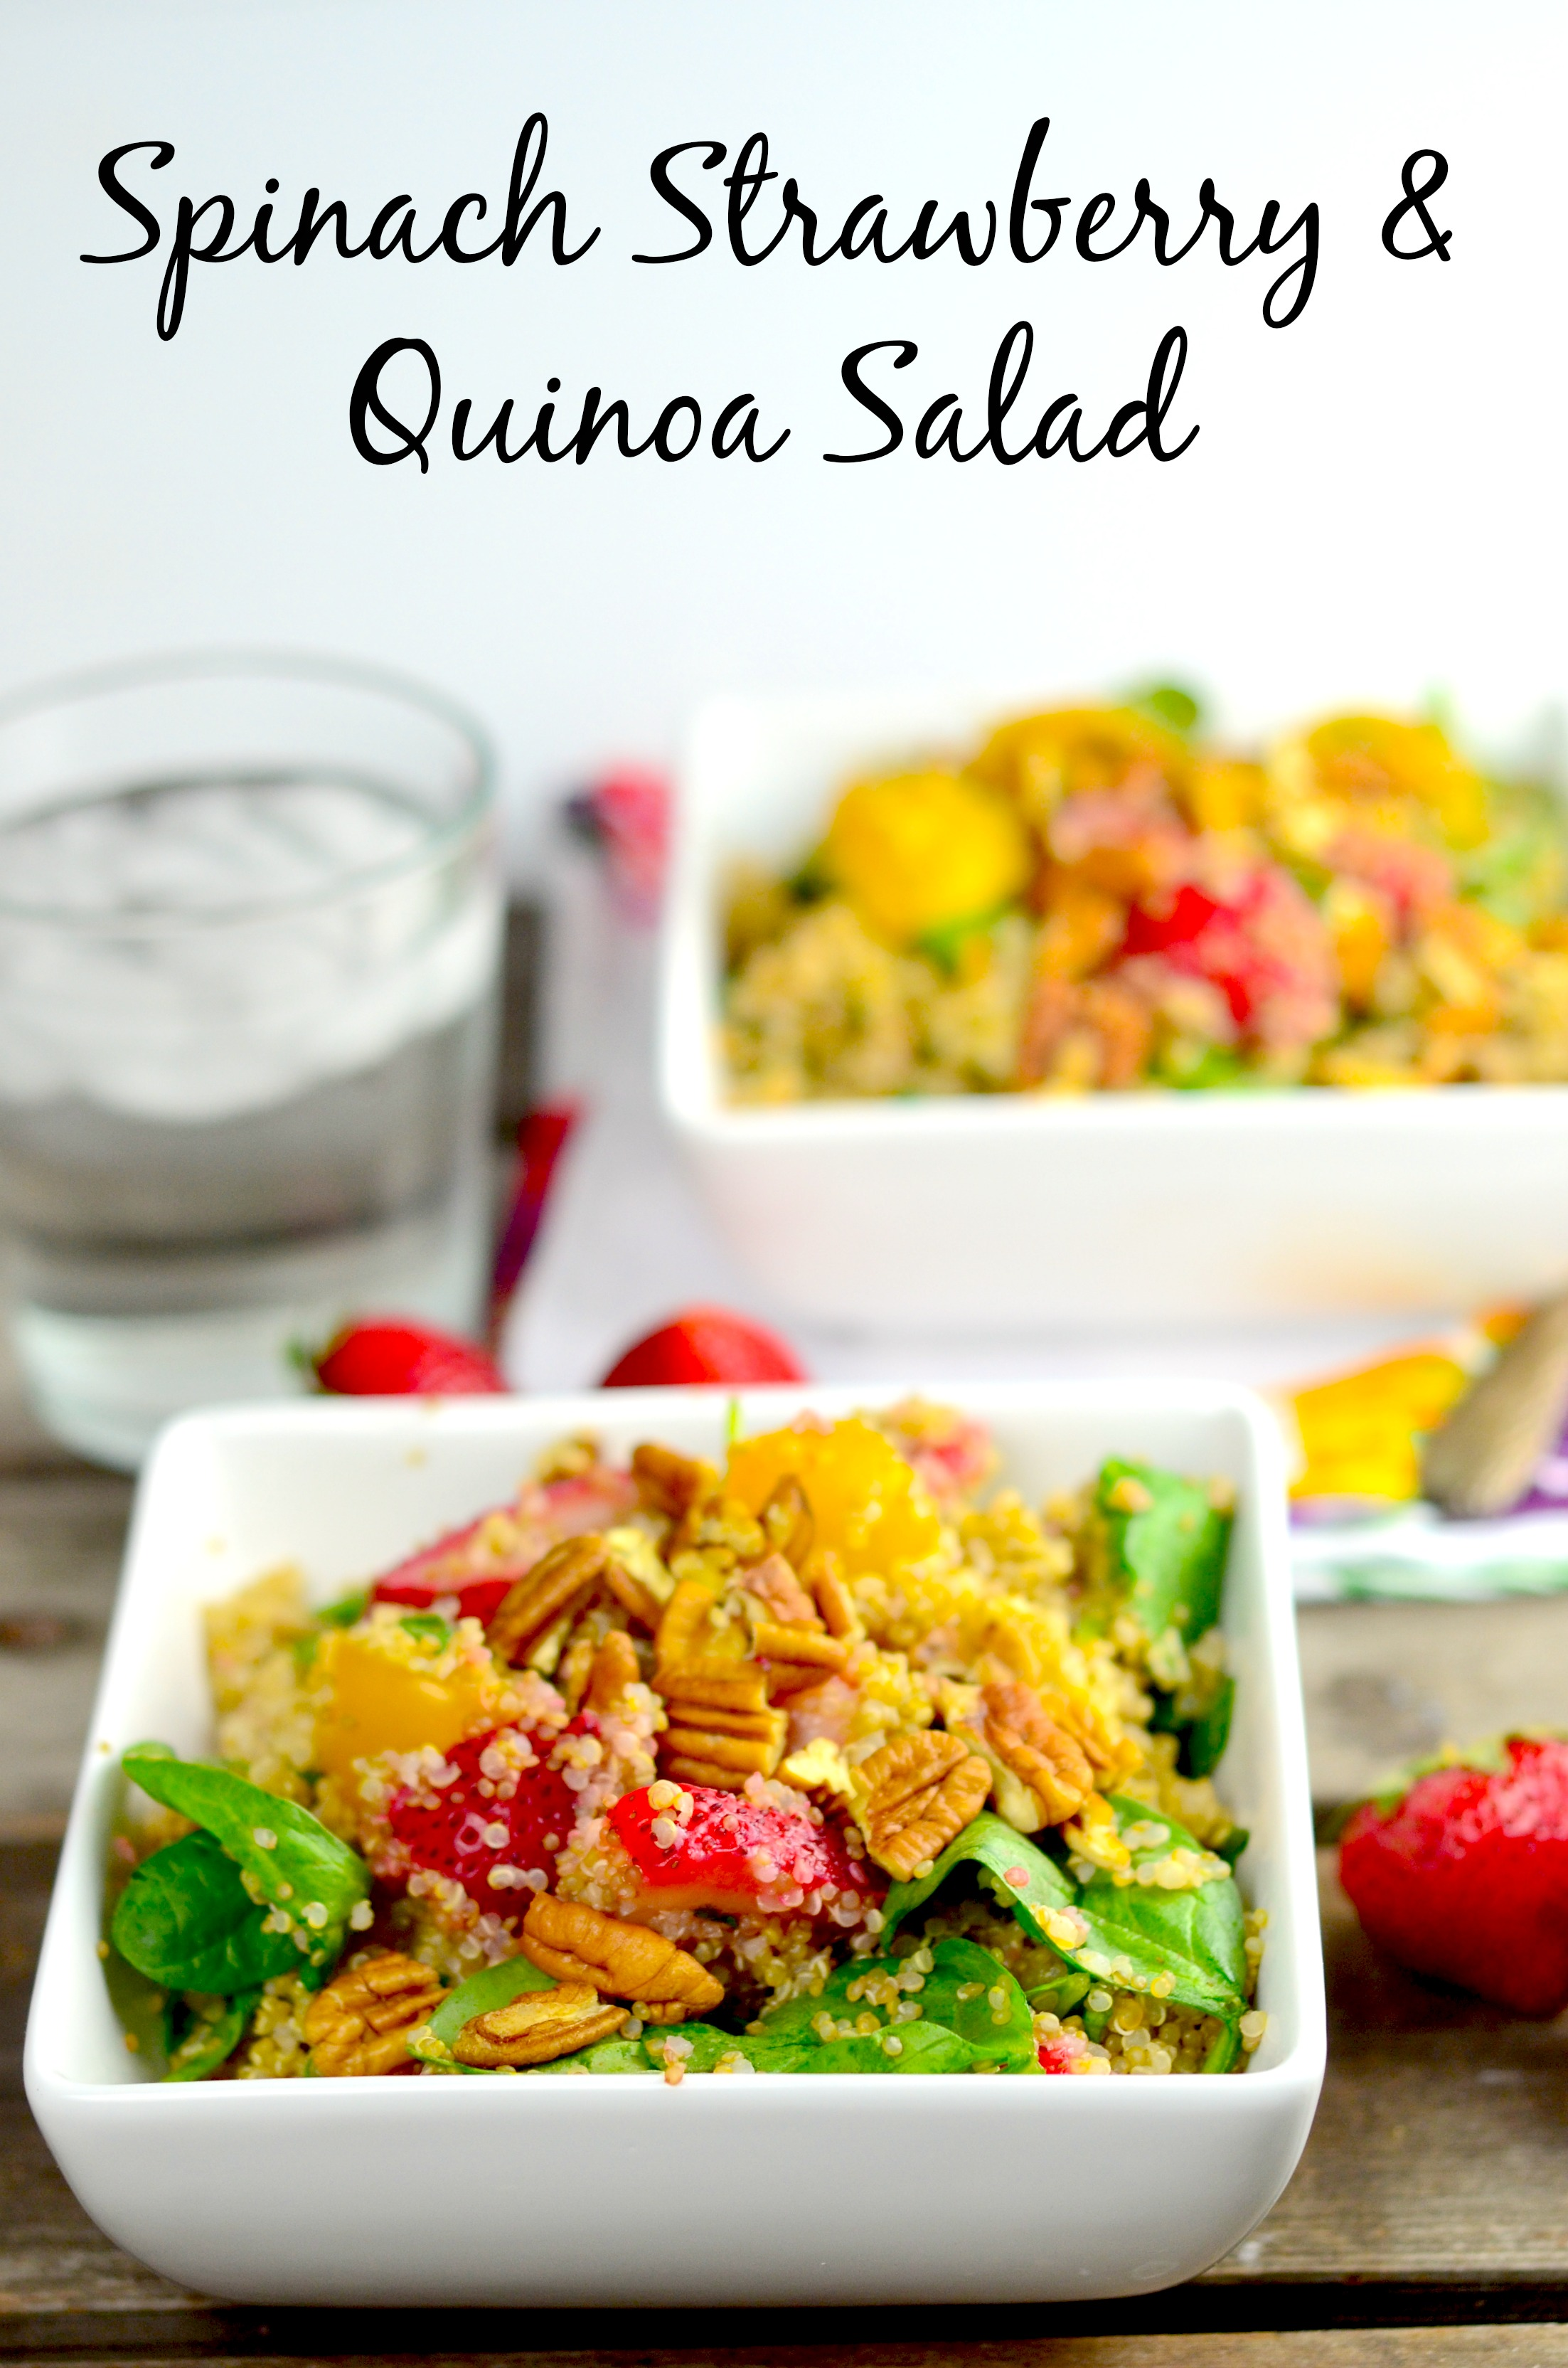 Spinach, Strawberry & Quinoa Salad